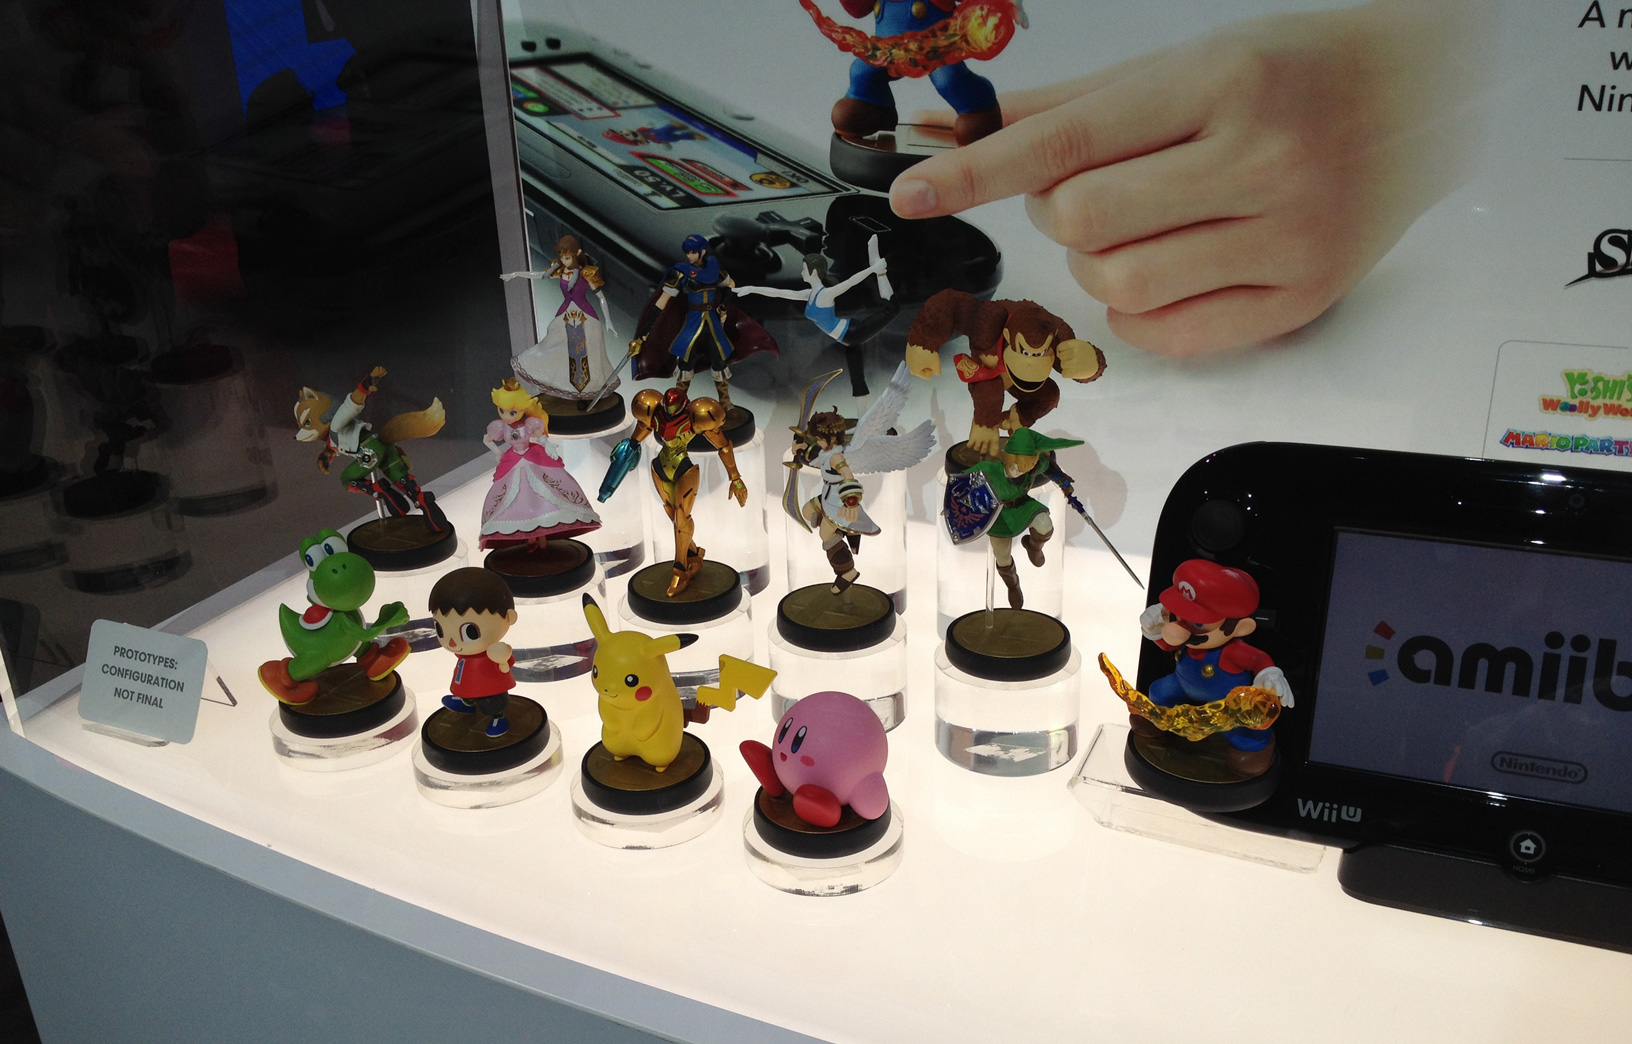 Wii U Super Smash Bros. amiibo